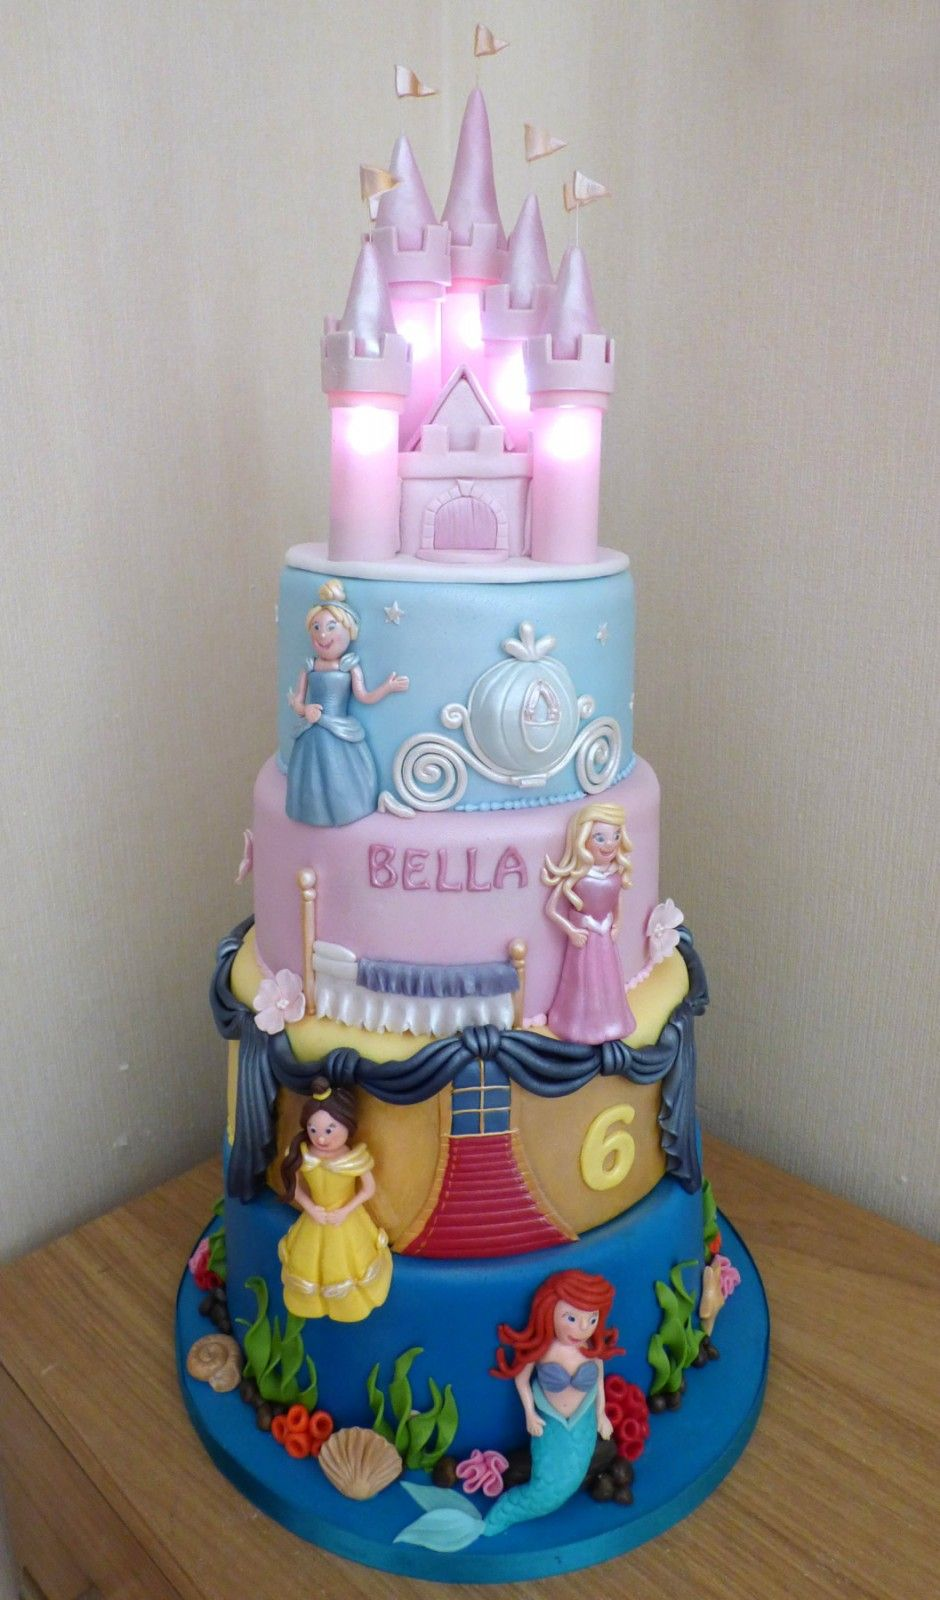 castle cake #coupon code nicesup123 gets 25% off at www.provestra